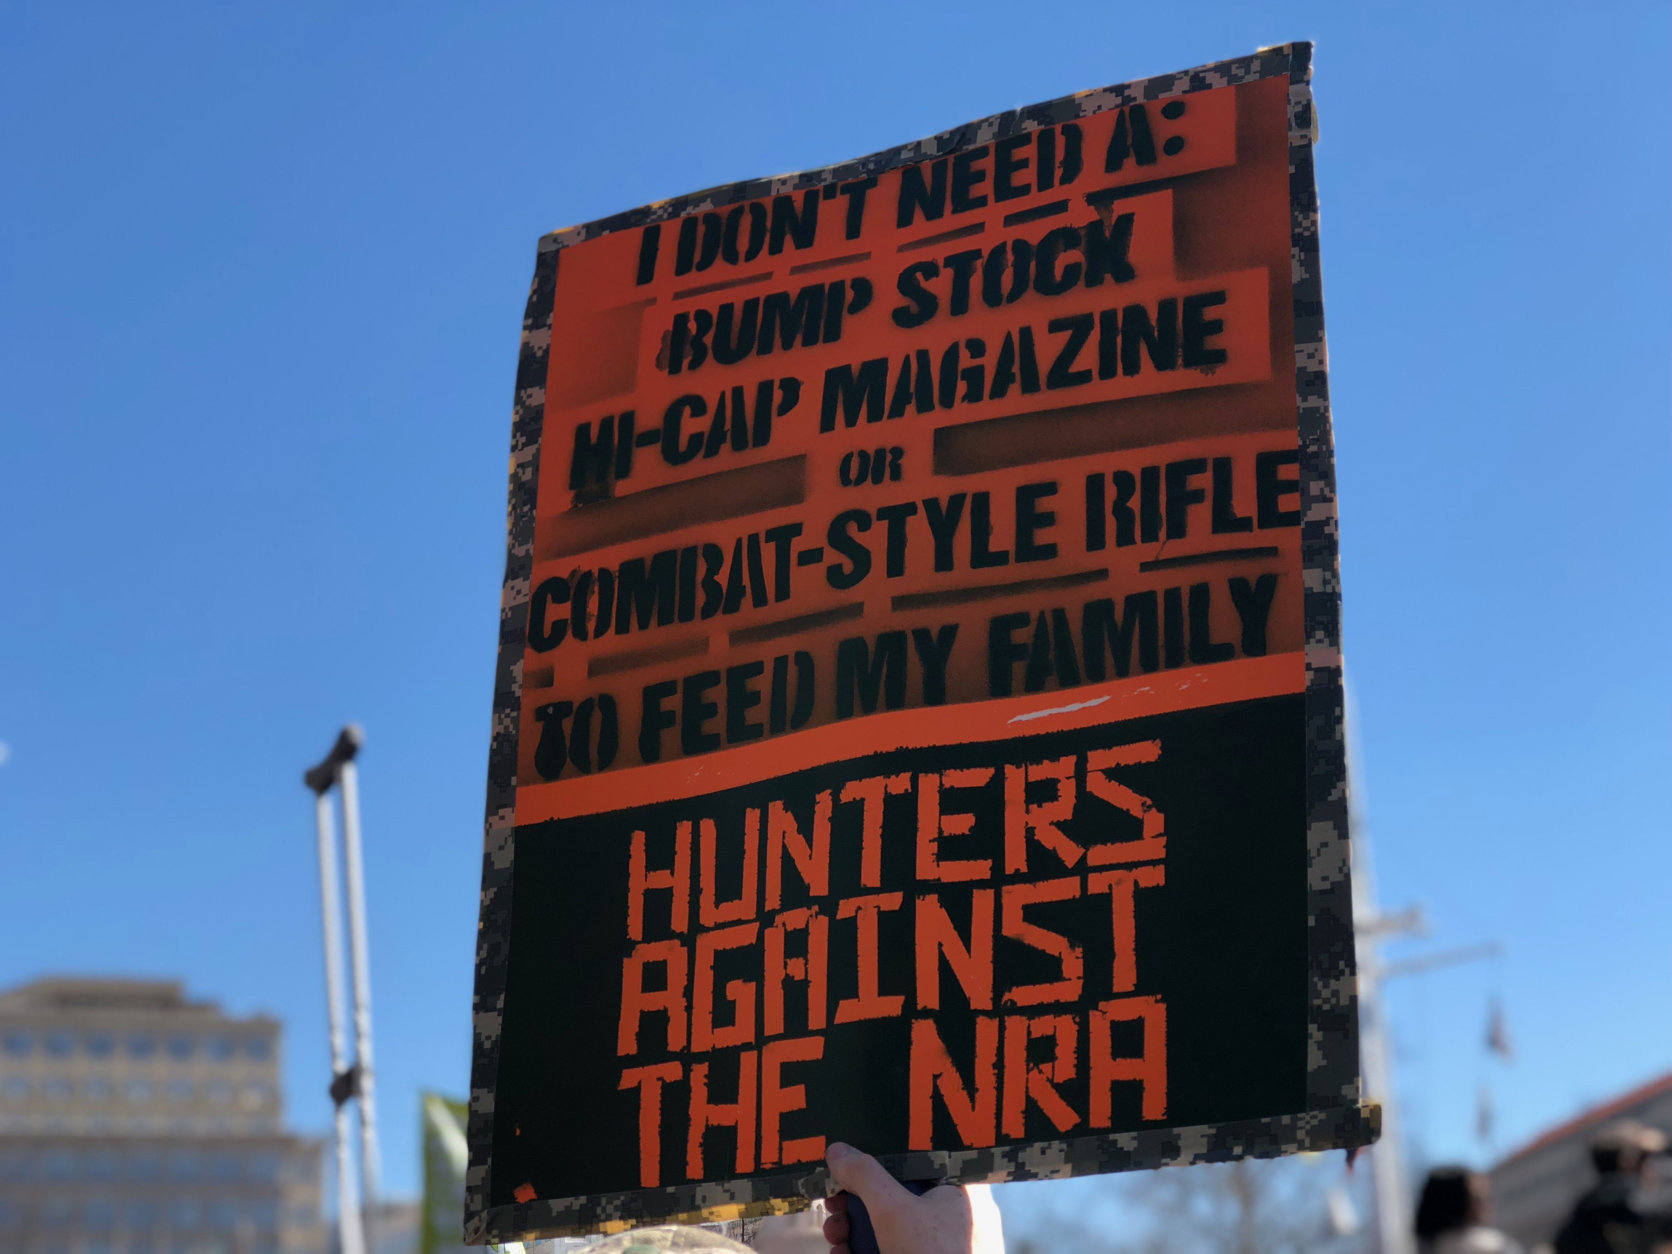 One of the many signs at the March For Our Lives Rally Saturday. (WTOP/Kate Ryan)